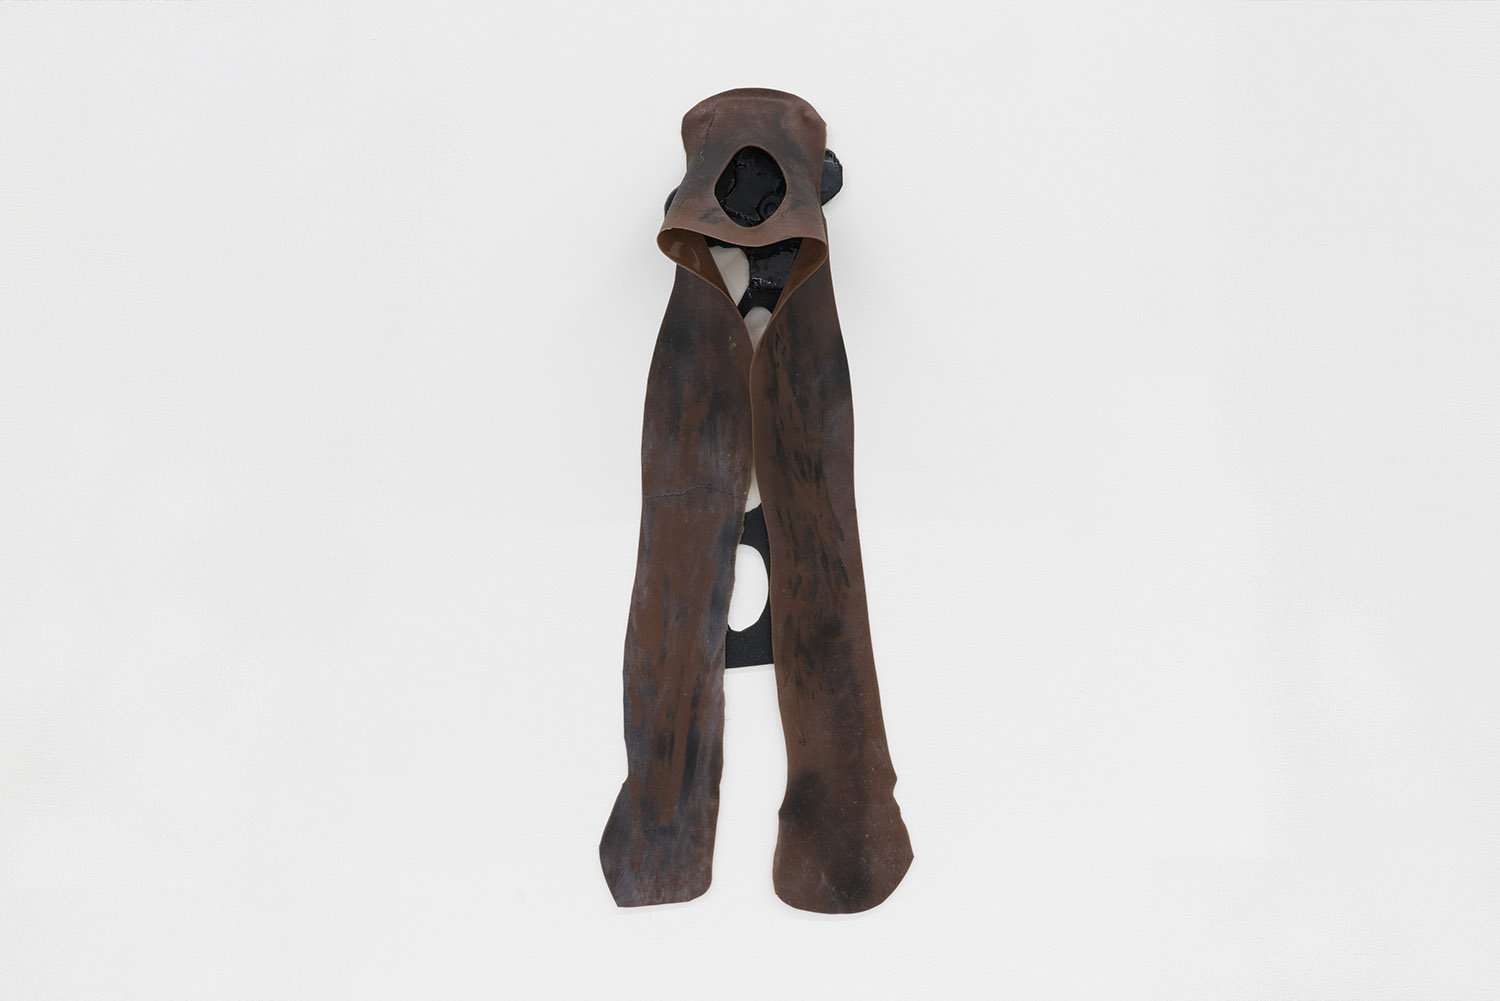 Copy of Sara Gernsbacher's abstract sculpture made of silicone and acrylic paint resembling a brown hood with legs over a black flower with a black stem hanging against a white wall